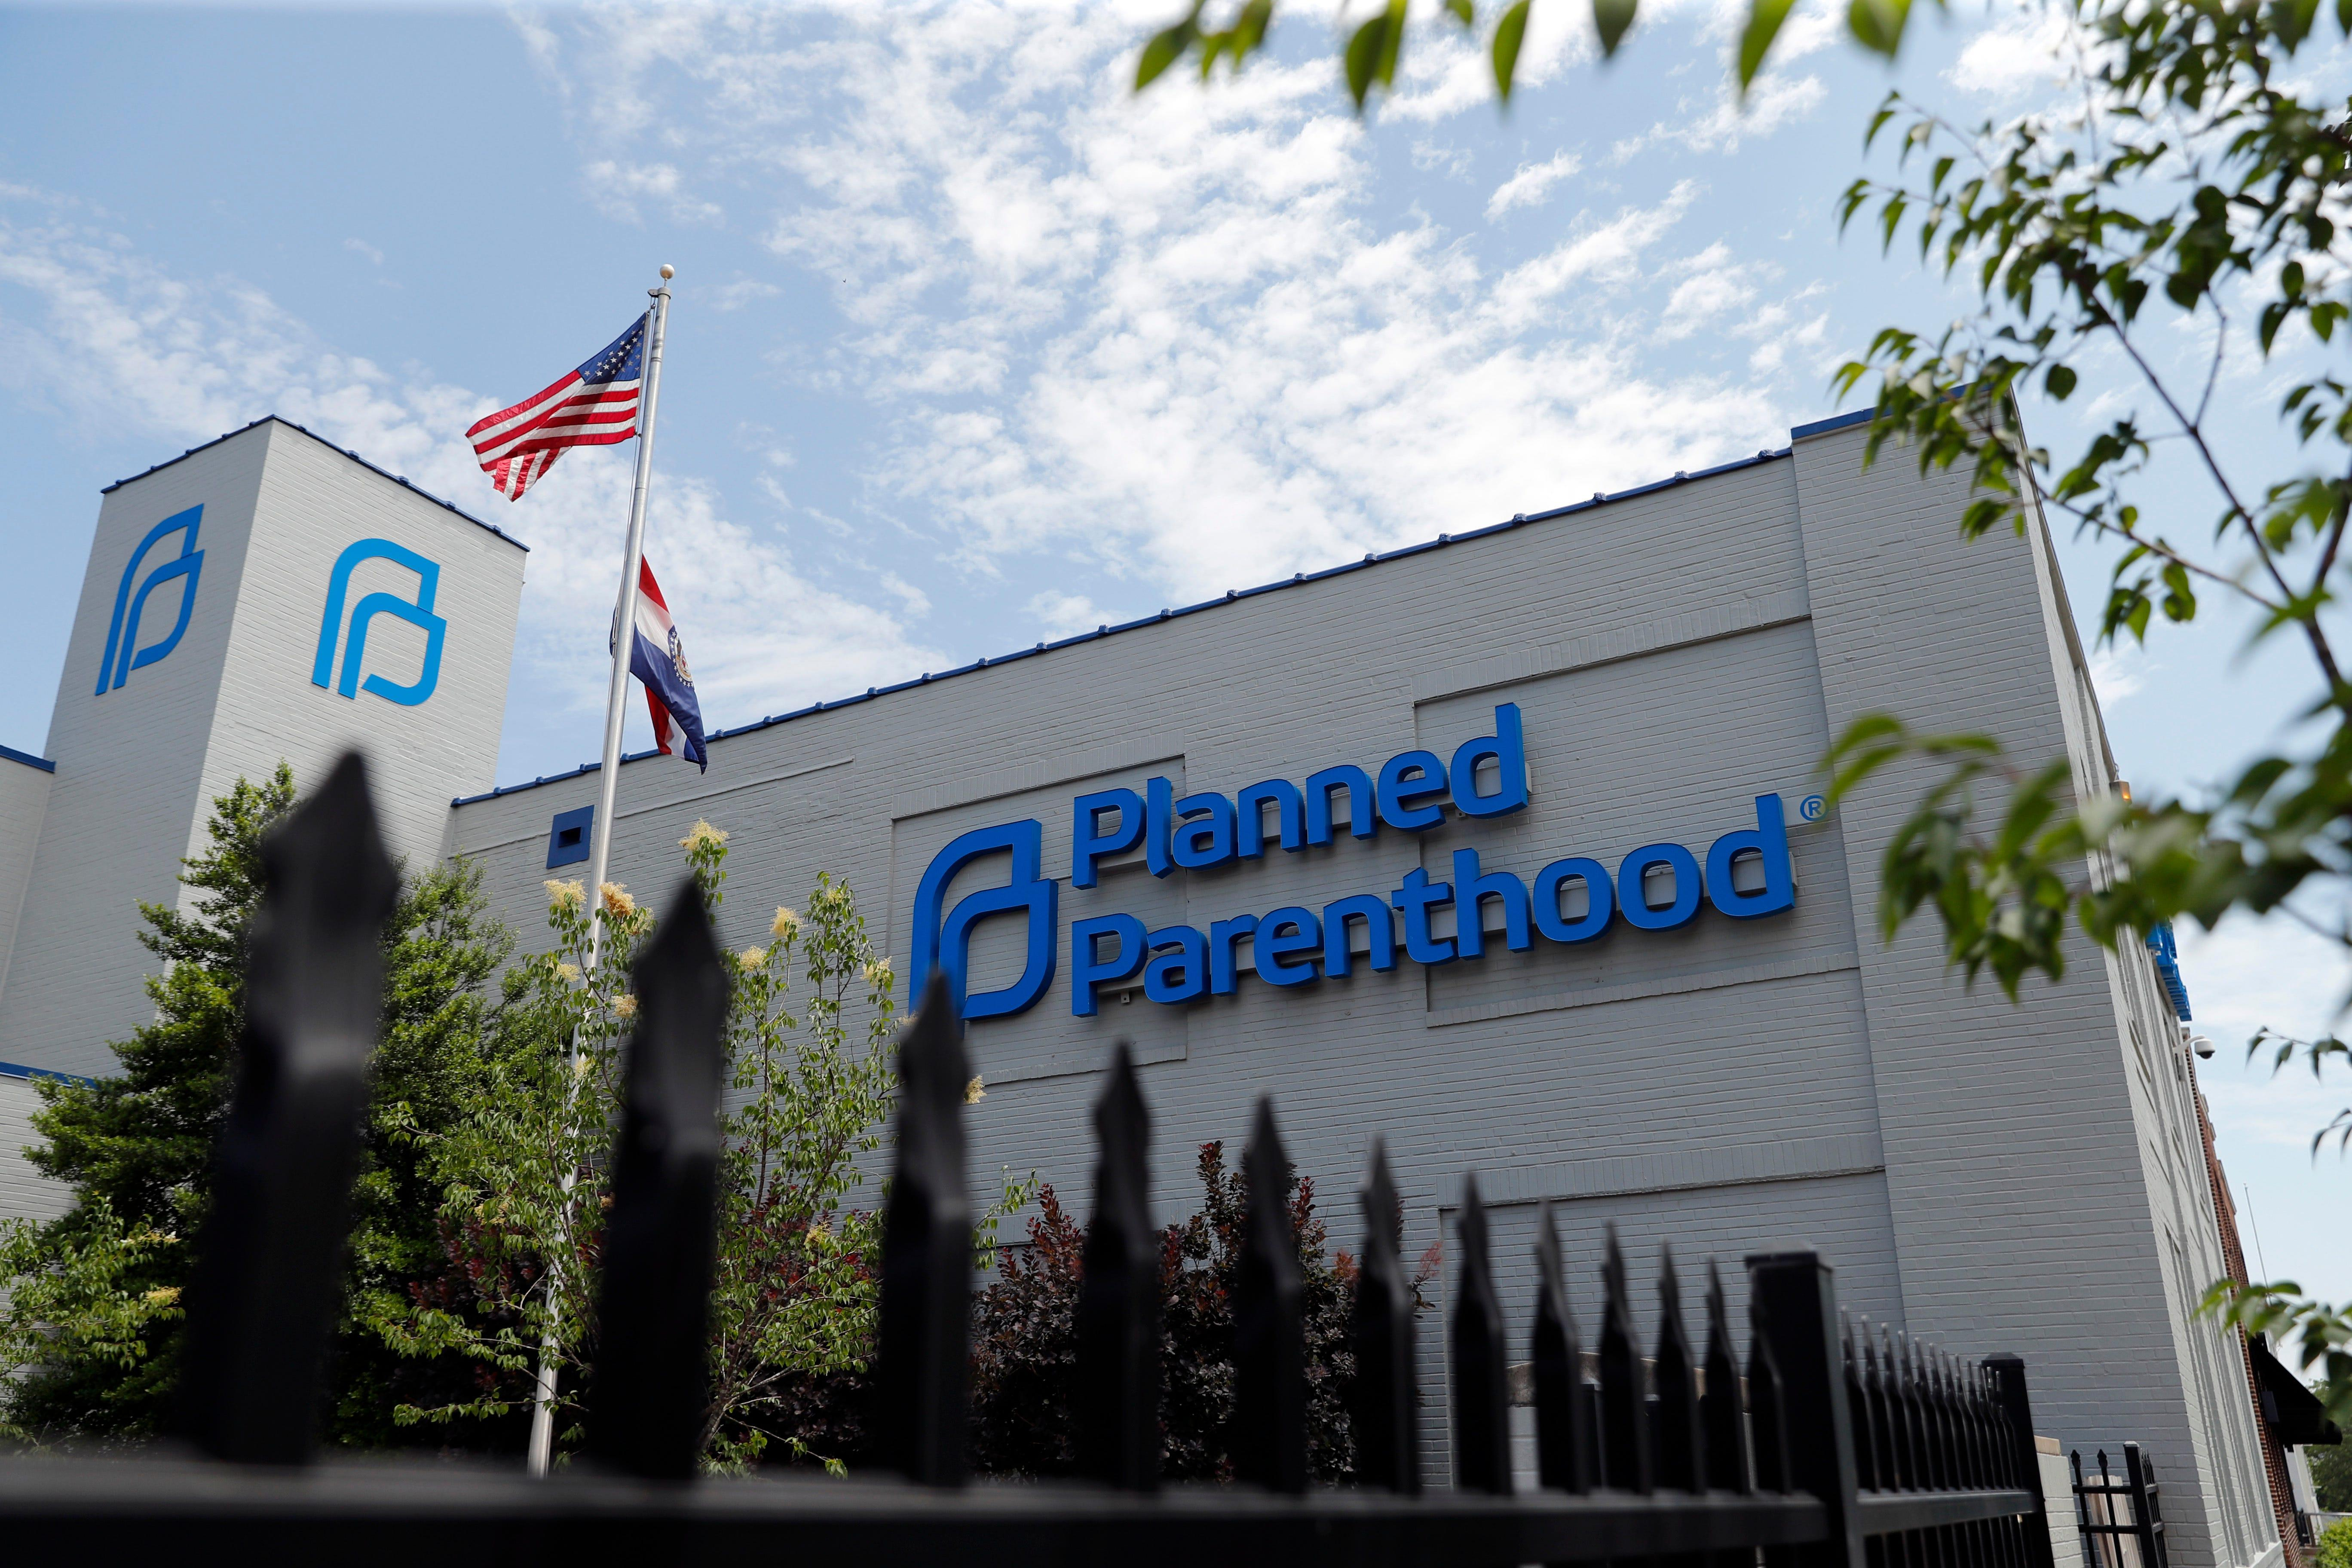 After yearlong fight, Missouri's lone abortion clinic gets its license renewed